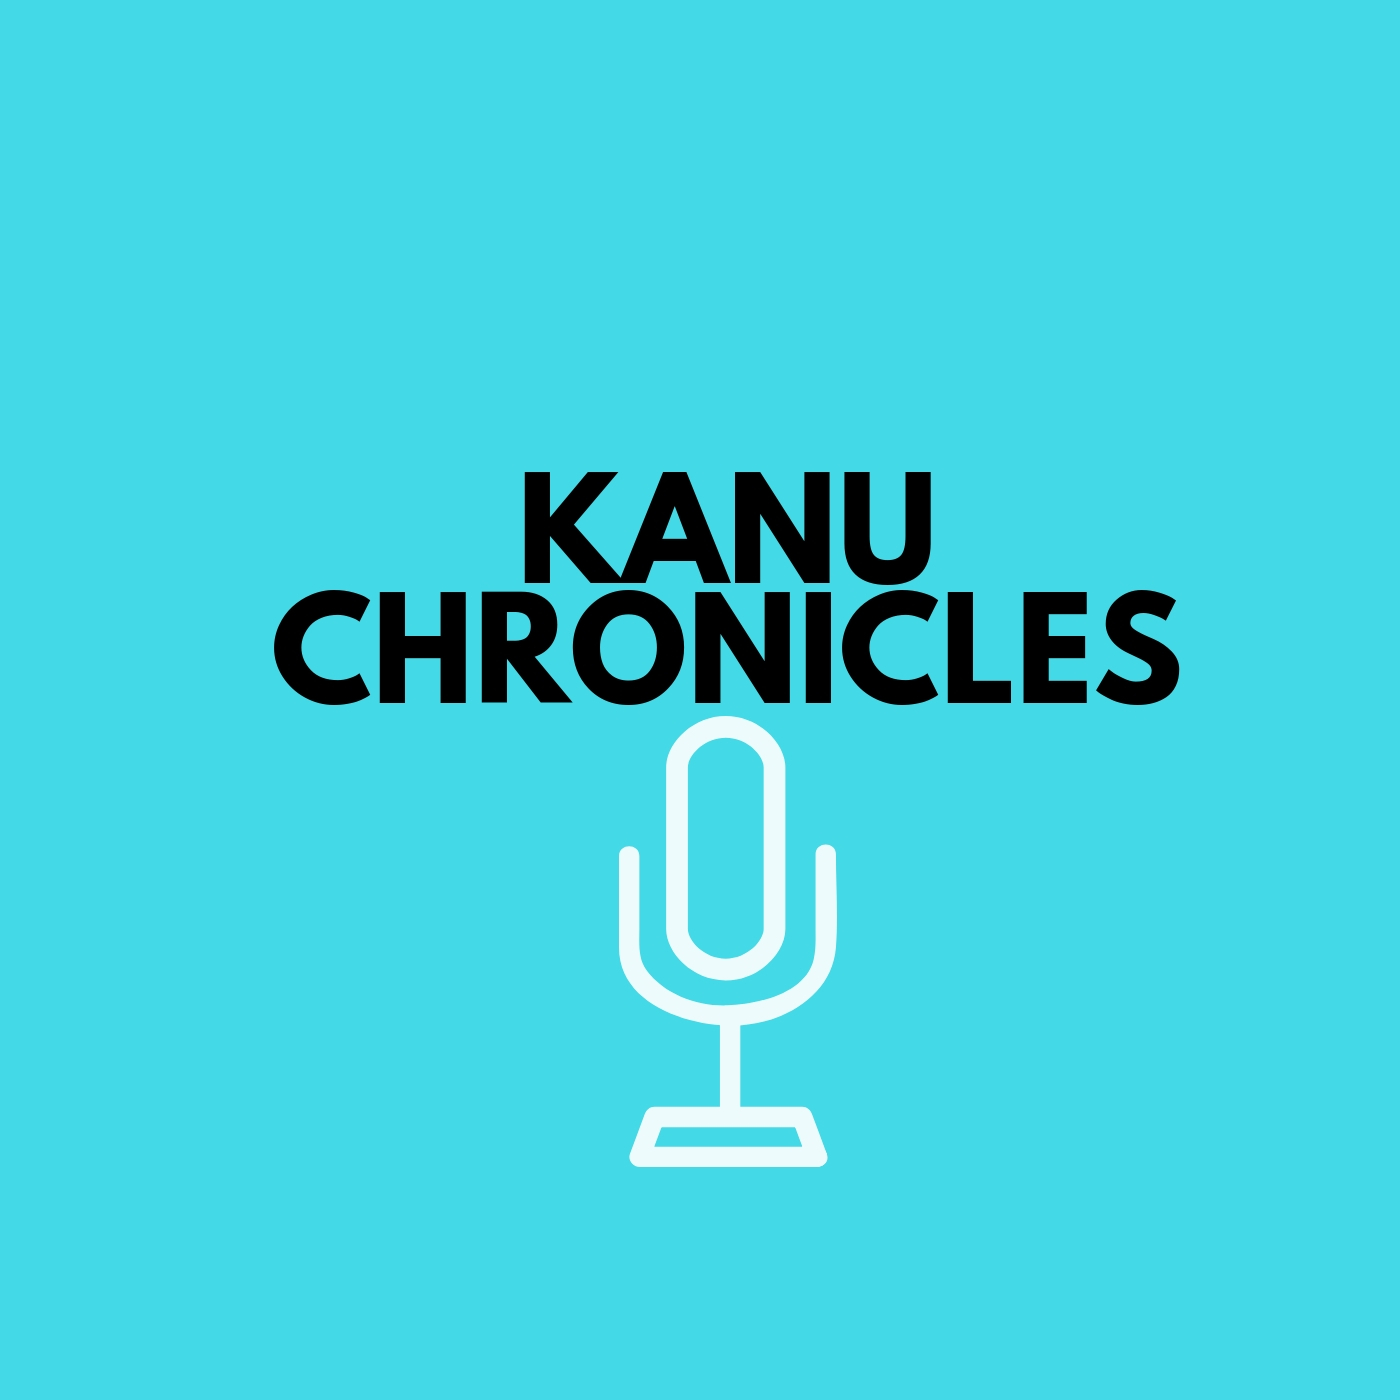 KANU CHRONICLES